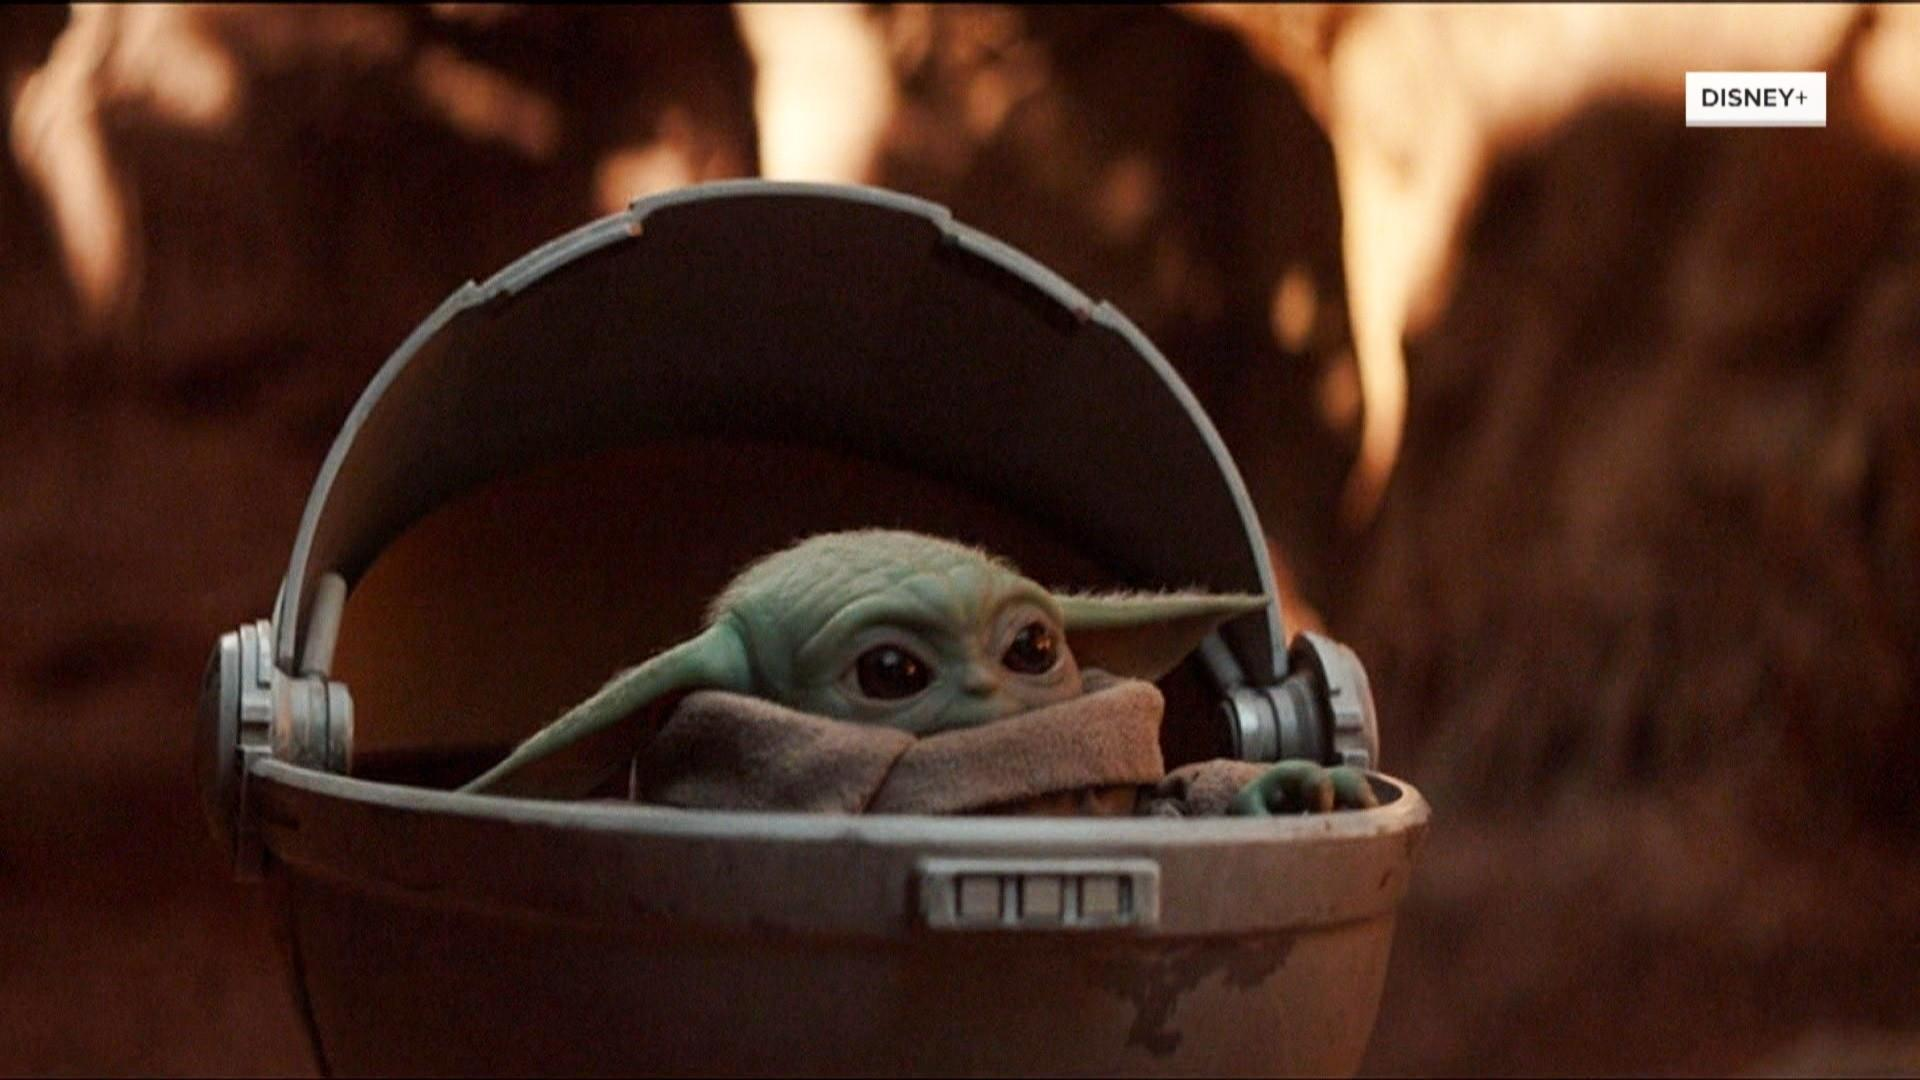 Baby Yoda products available for pre-order but won't arrive until May 2020